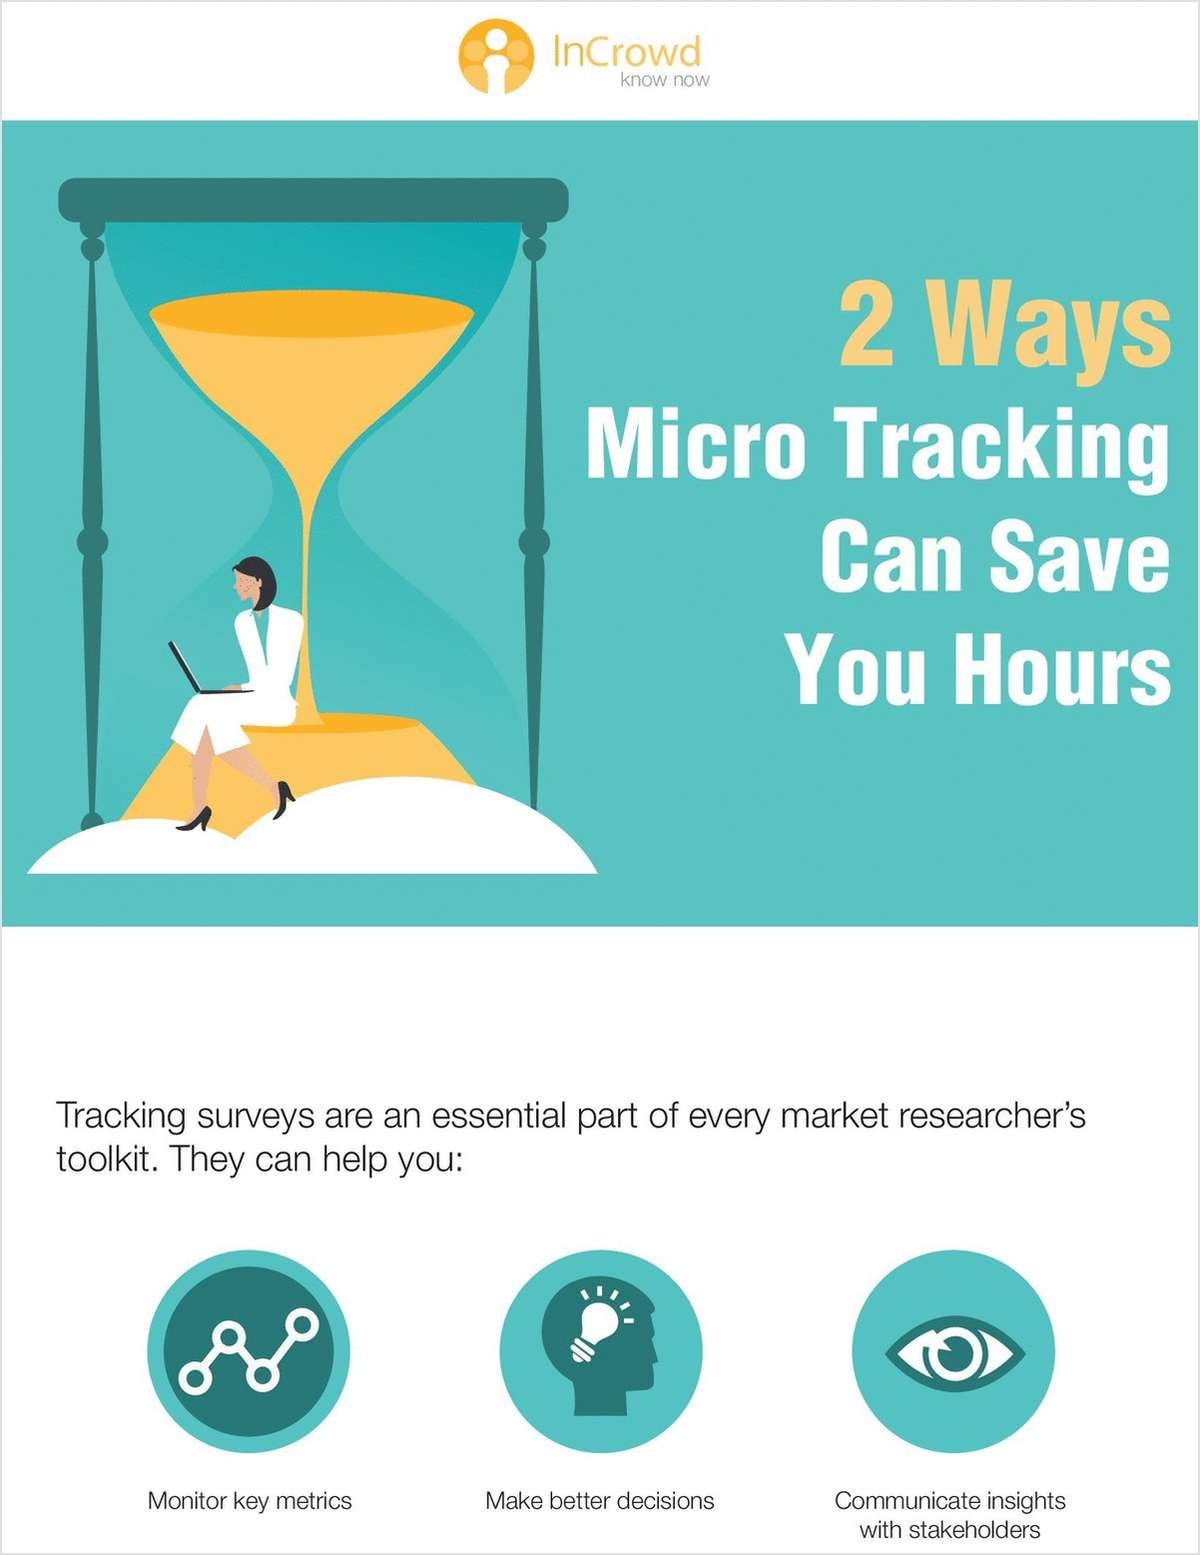 2 Ways Micro Tracking Can Save You Hours